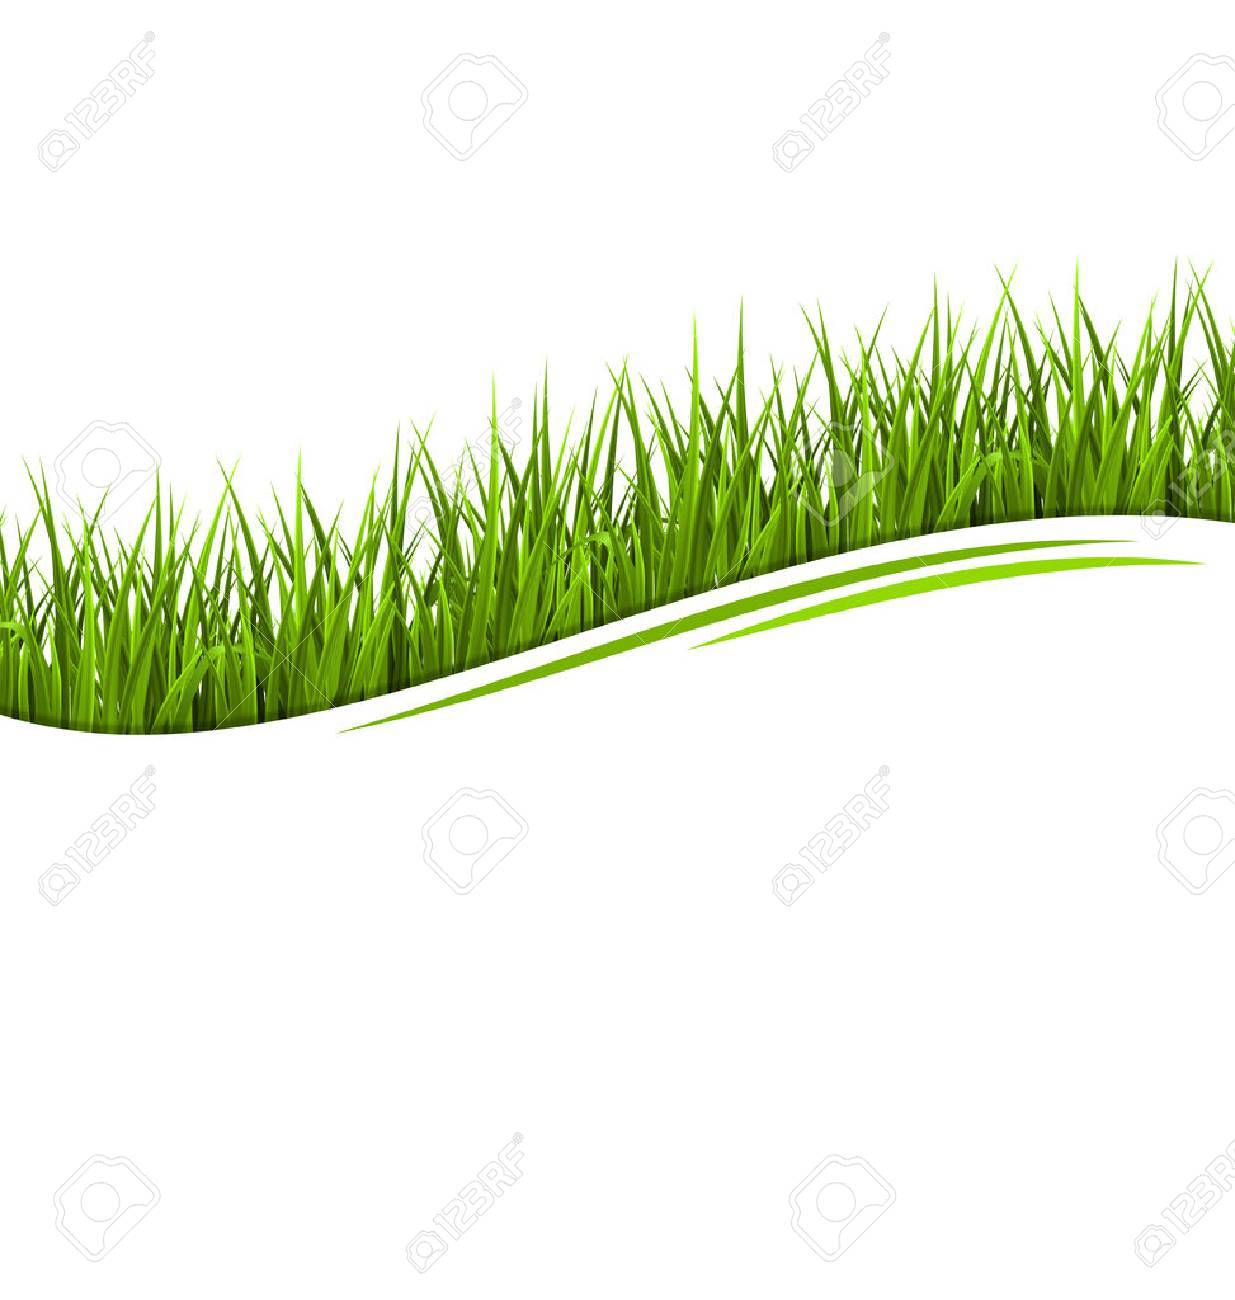 Green grass lawn wave isolated on white. Floral eco nature background - 37832827